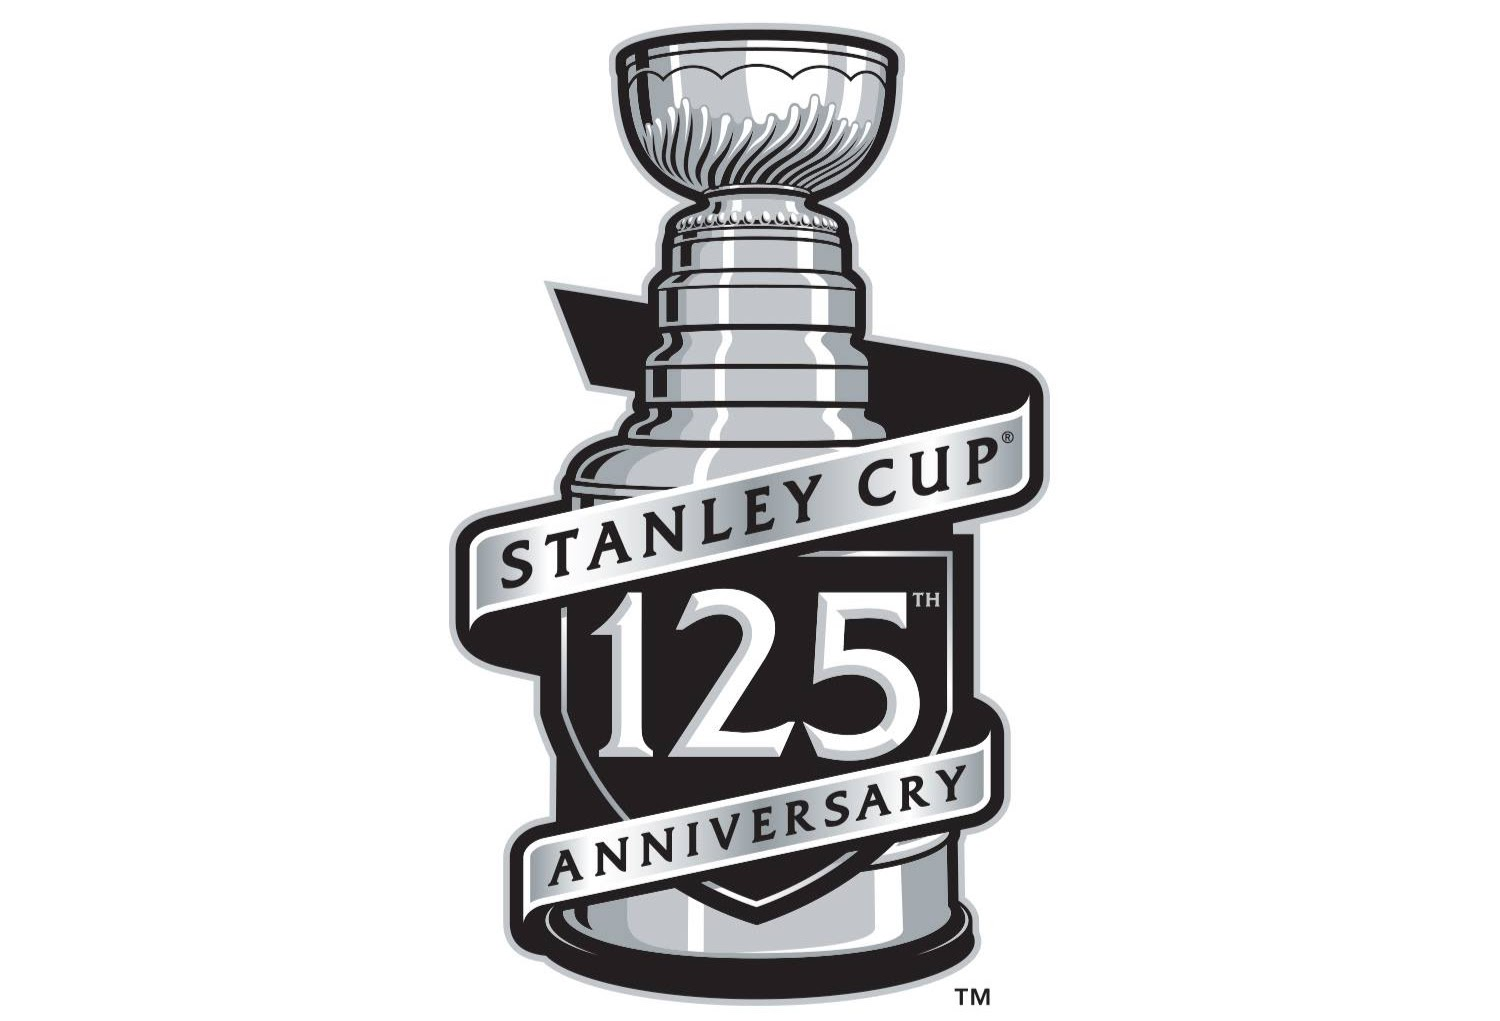 First Look: Stanley Cup 125th Anniversary Logo